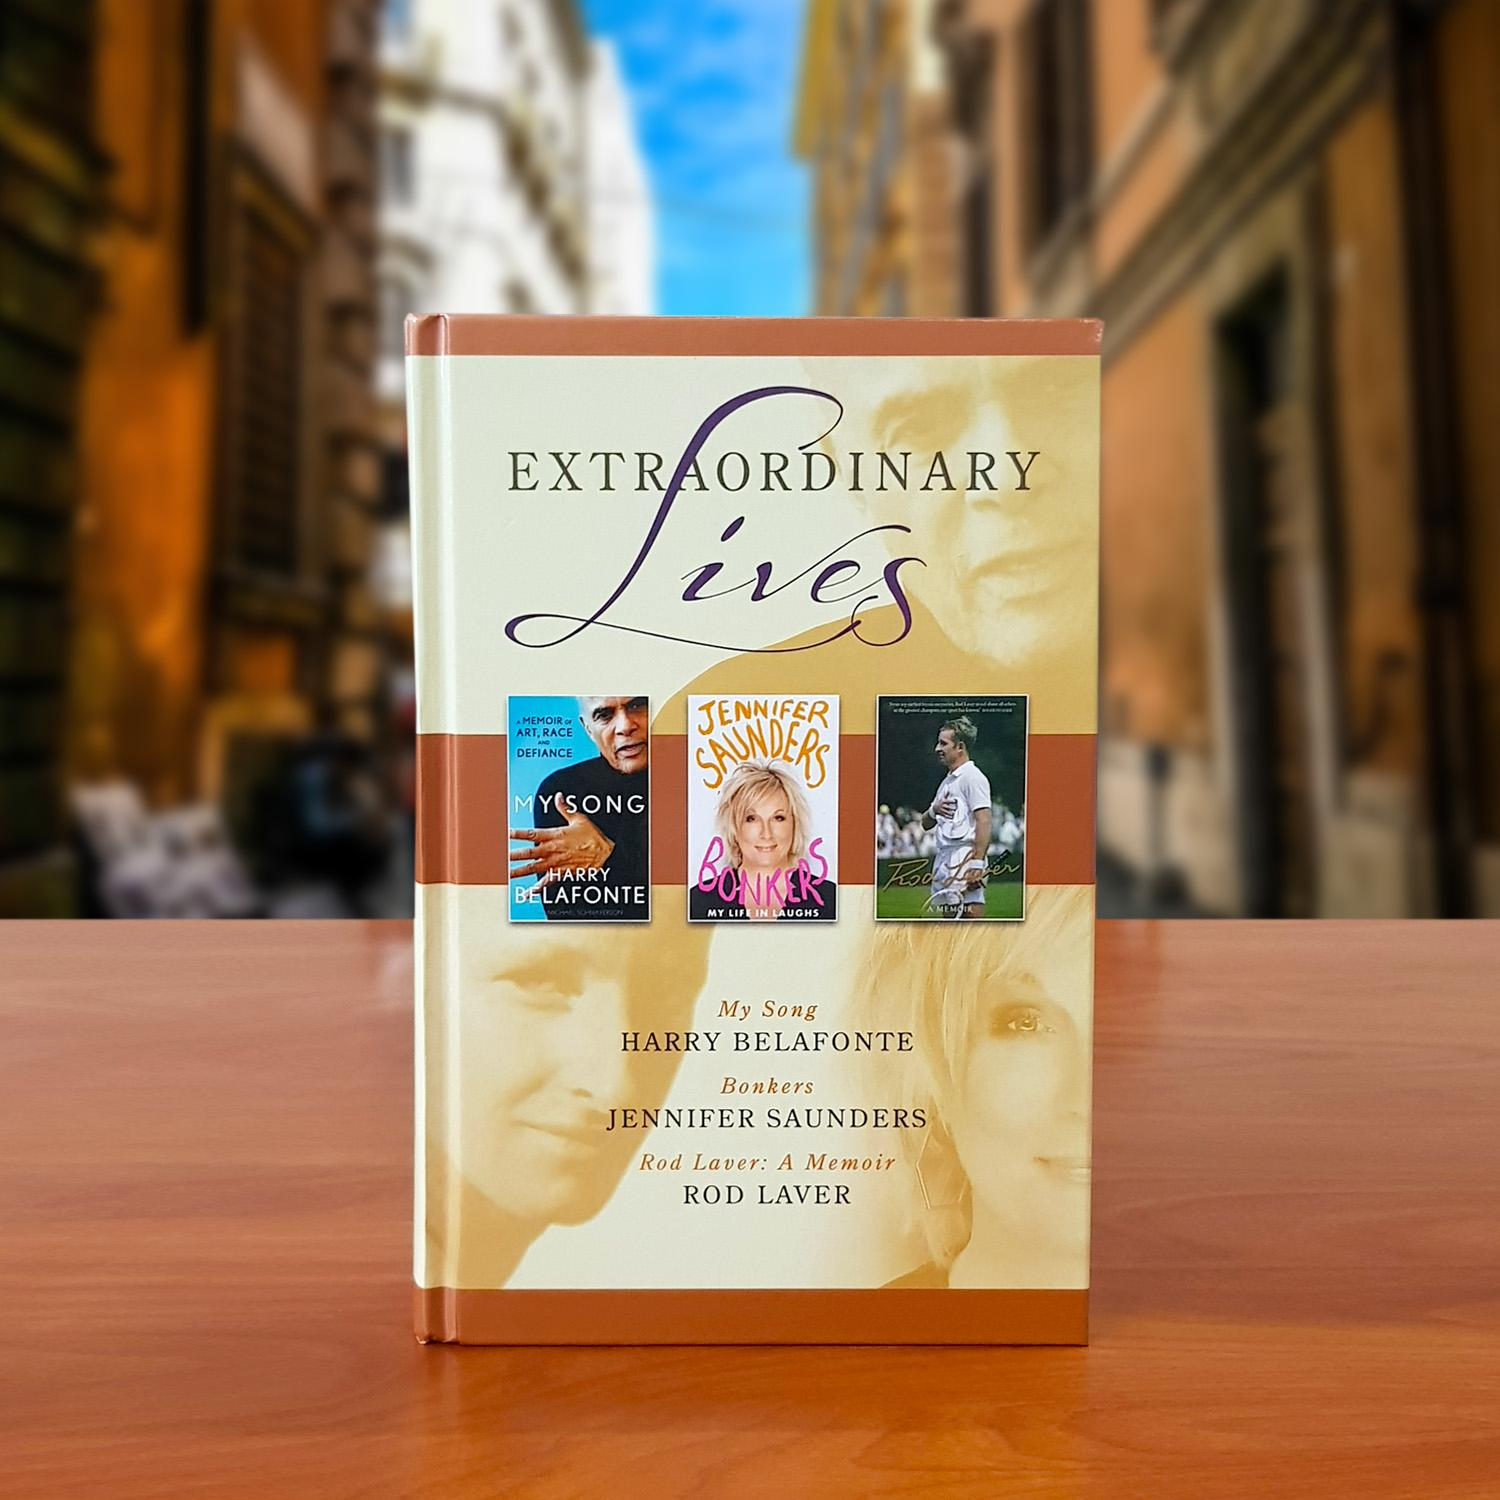 Extraordinary Lives 2 By Ehdi Online Shop.